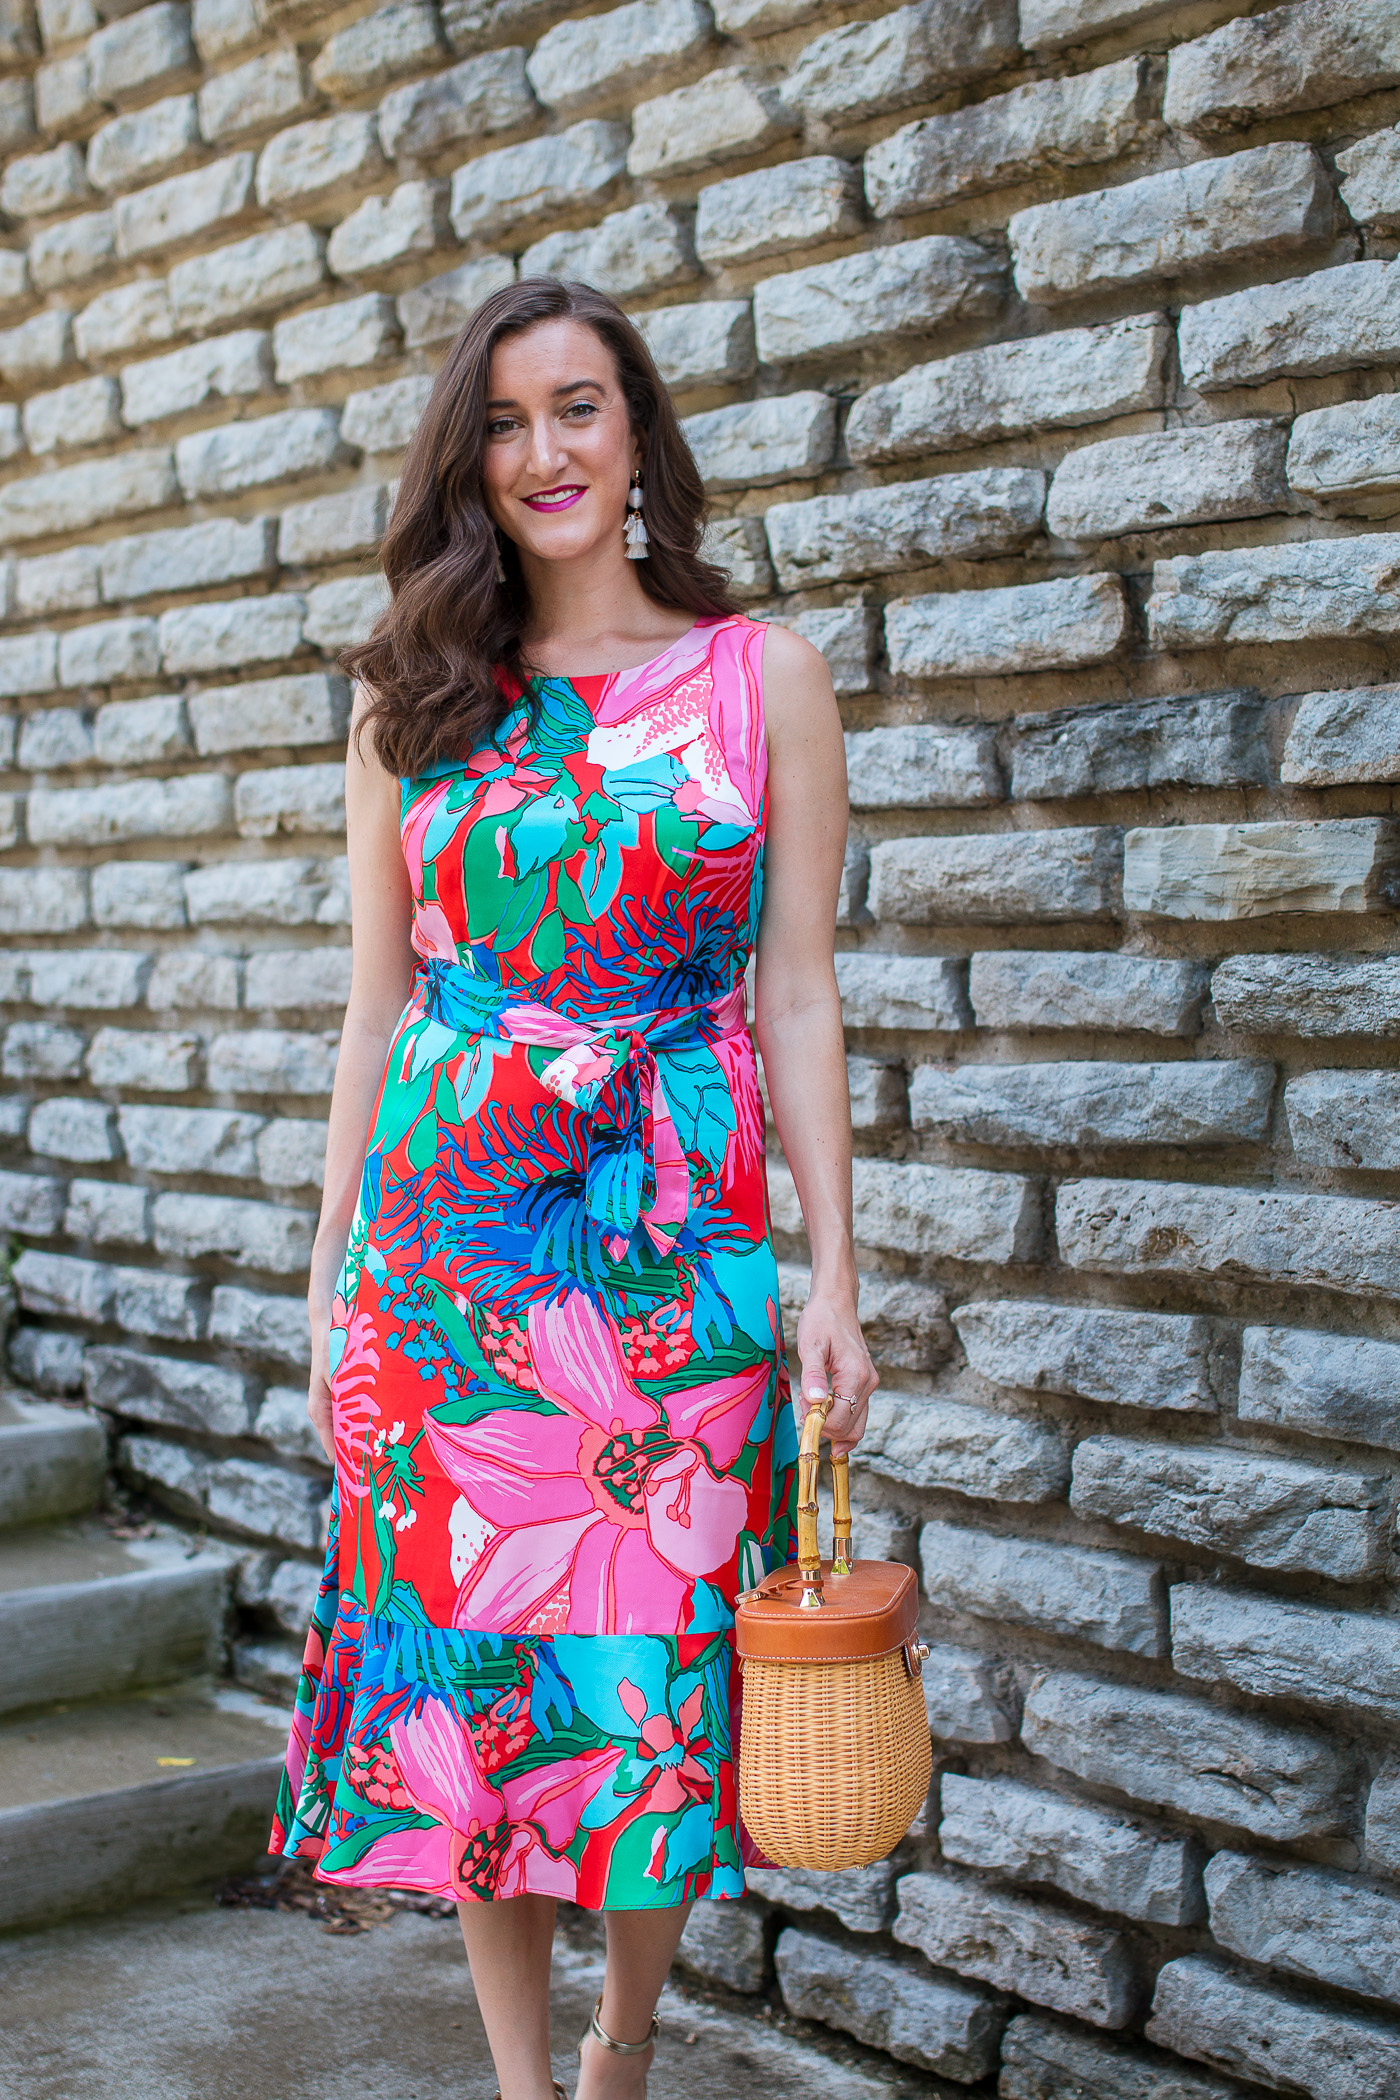 Floral Dress with Wicker Handbag